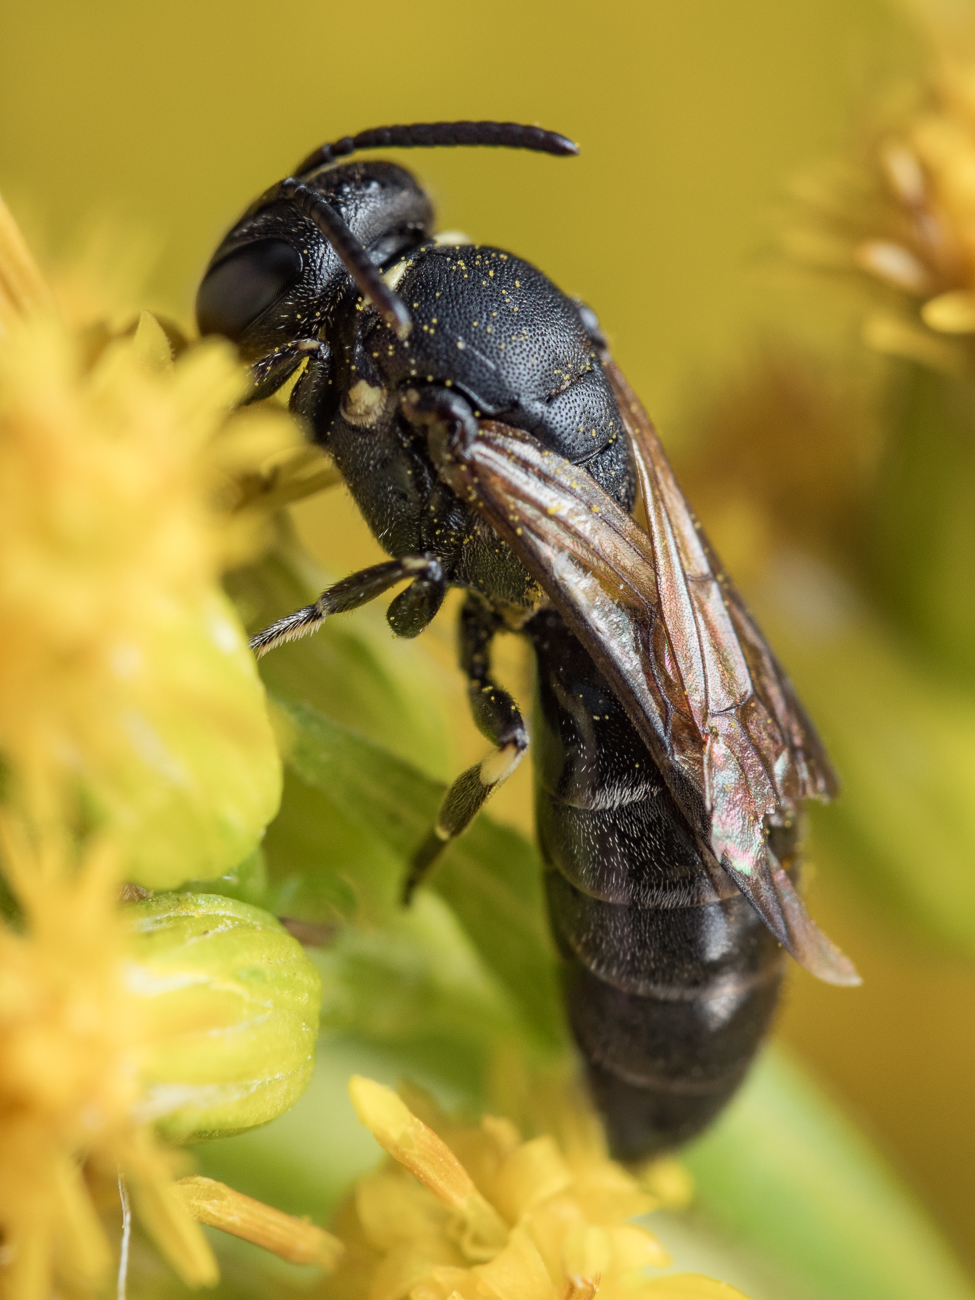 Hylaeus sp., citronbi